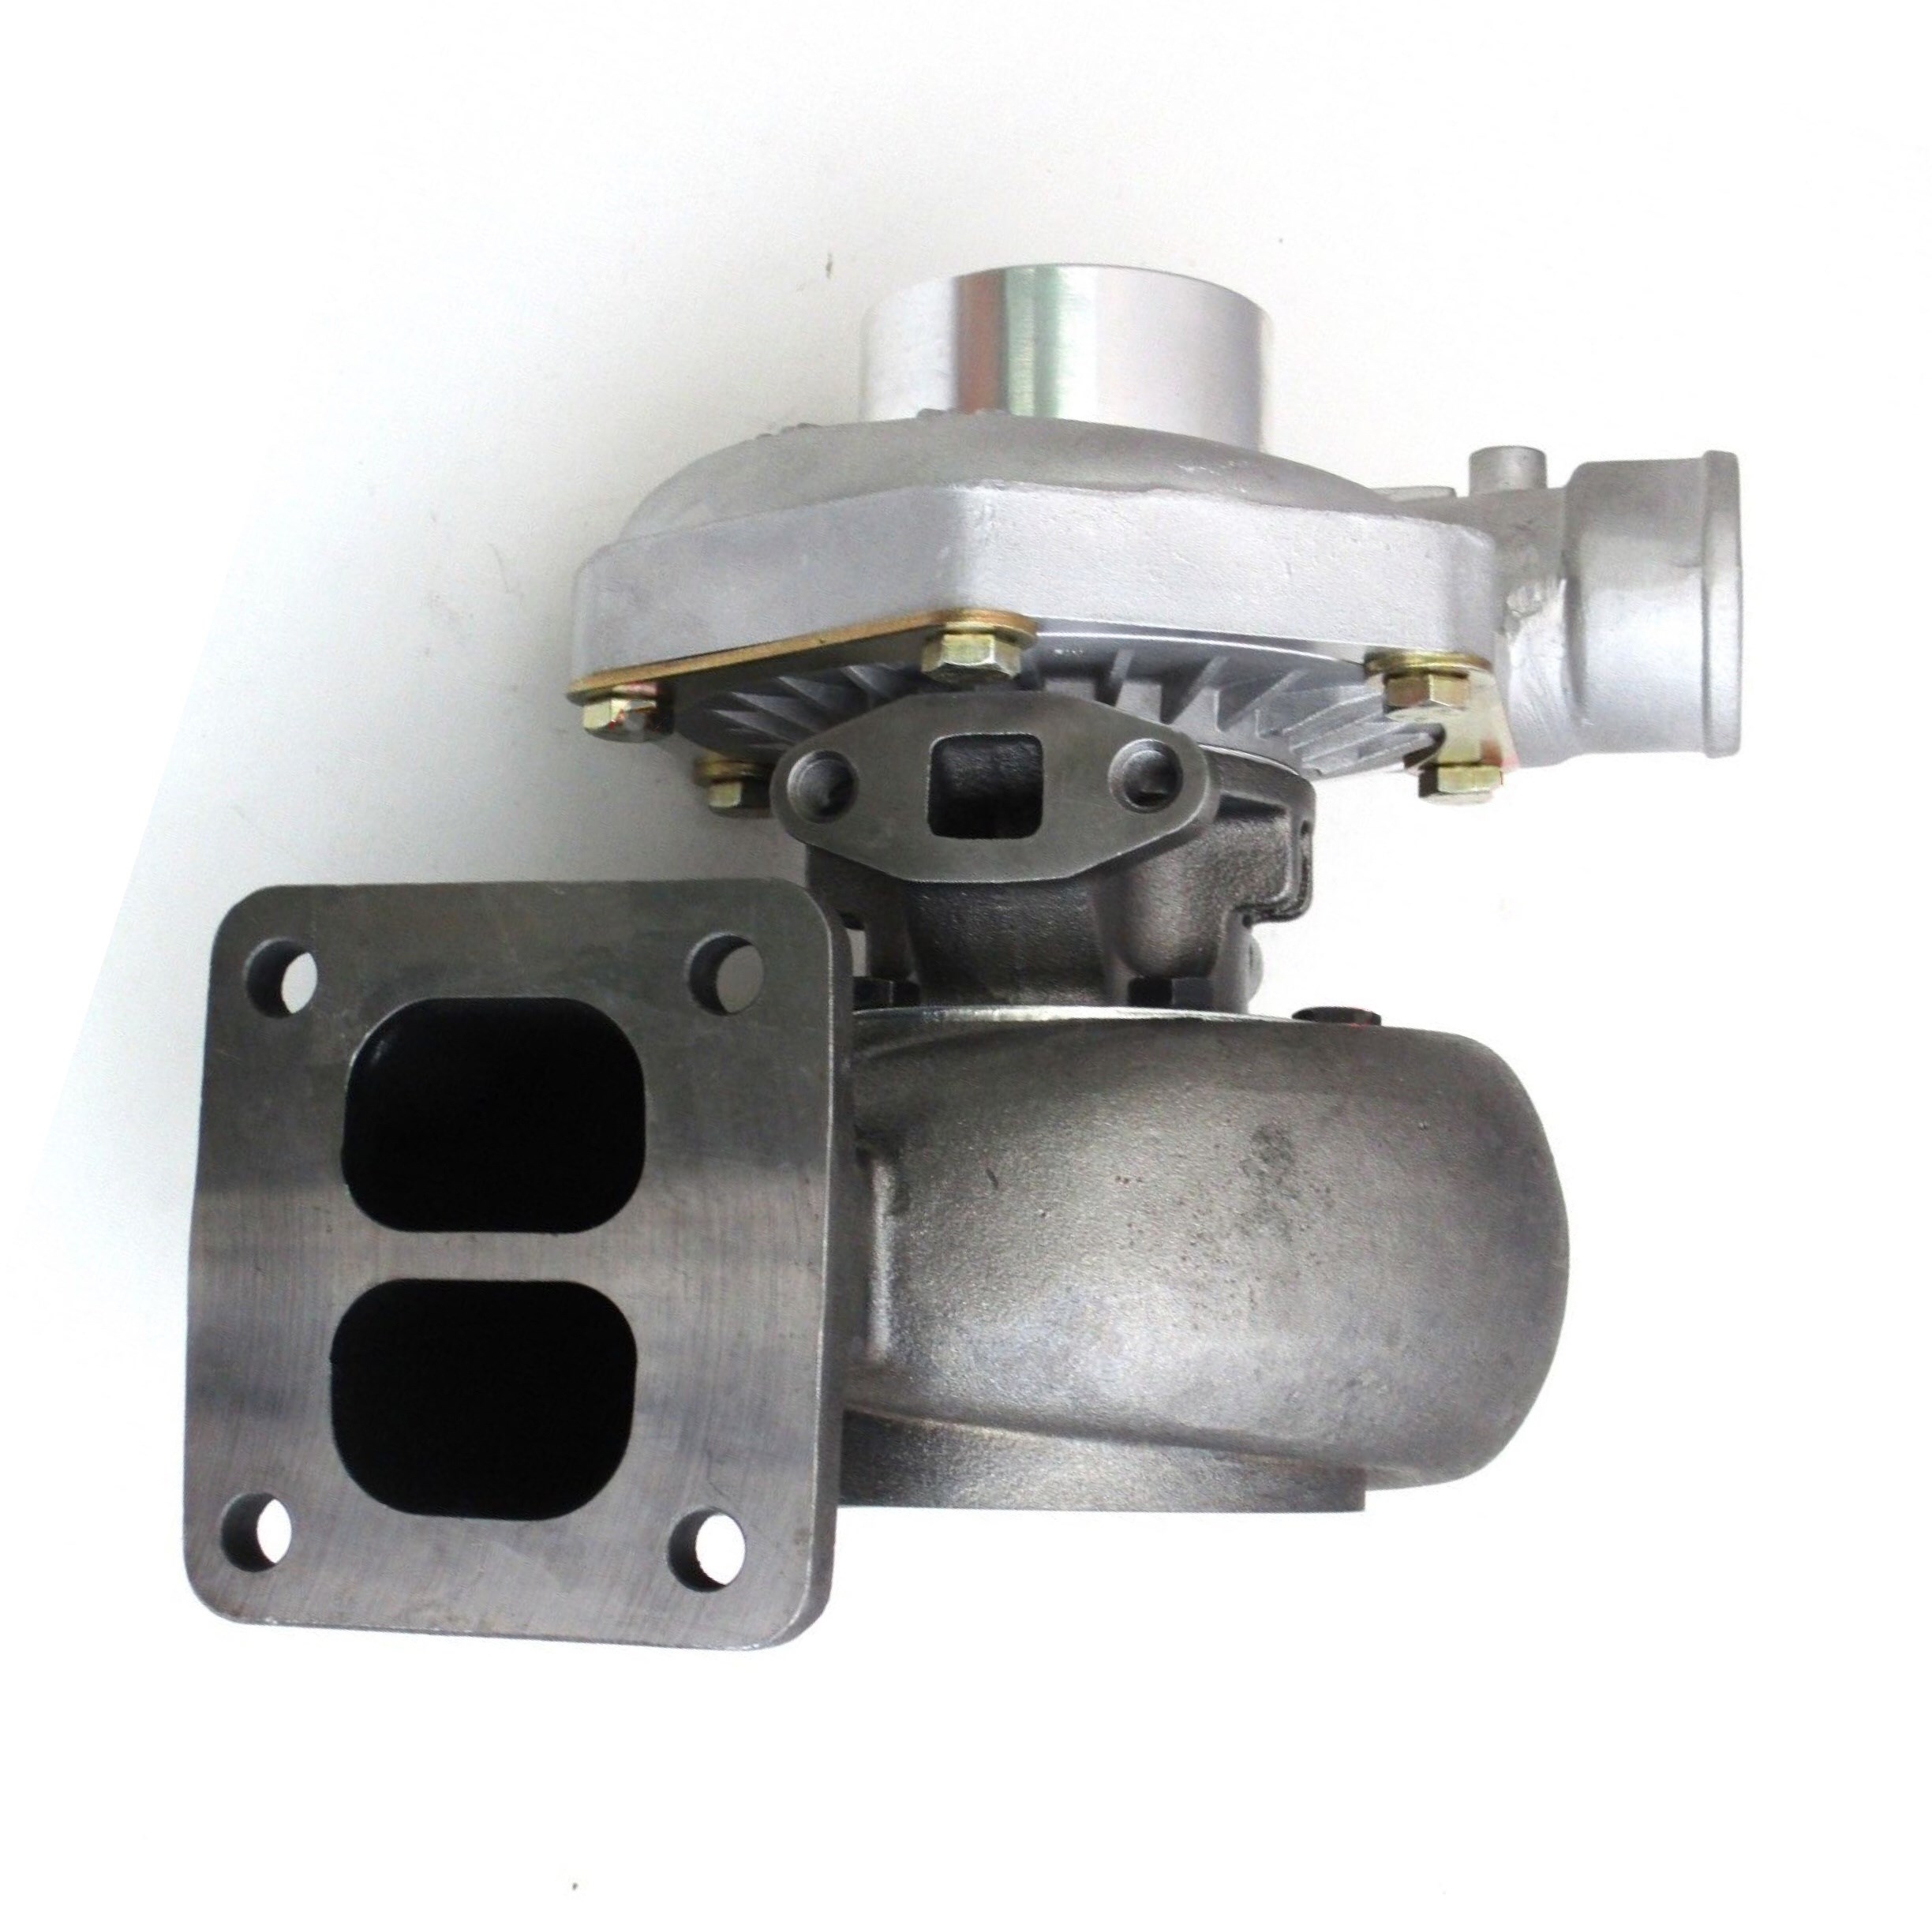 Turbocharger  TO4B91 409410-0001 4N6859 0R5799 1P9136 409410-0002 Turbo charger for Caterpillar Excavator 950B 3304 DIT